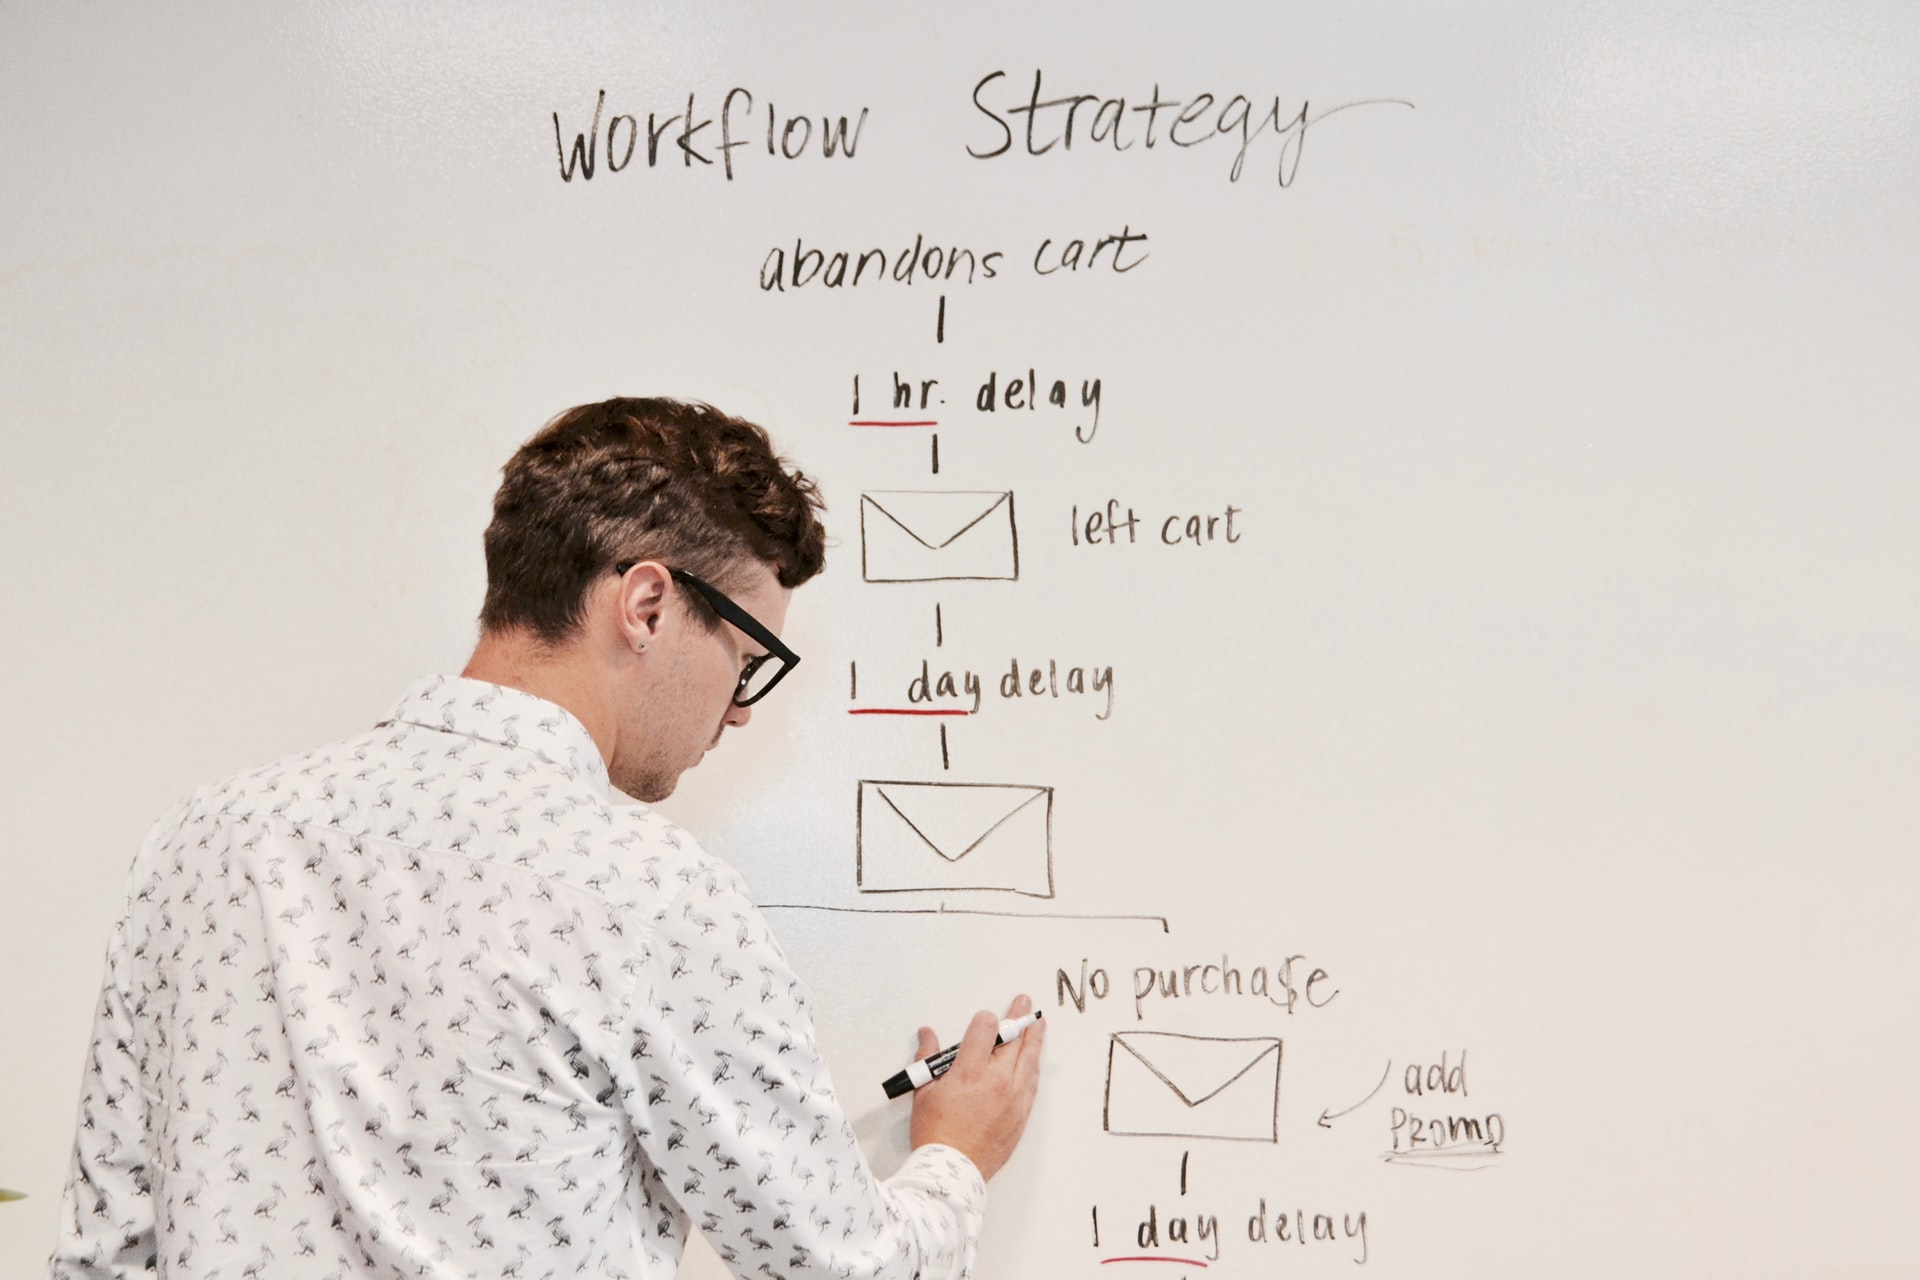 How To Implement Marketing Workflow